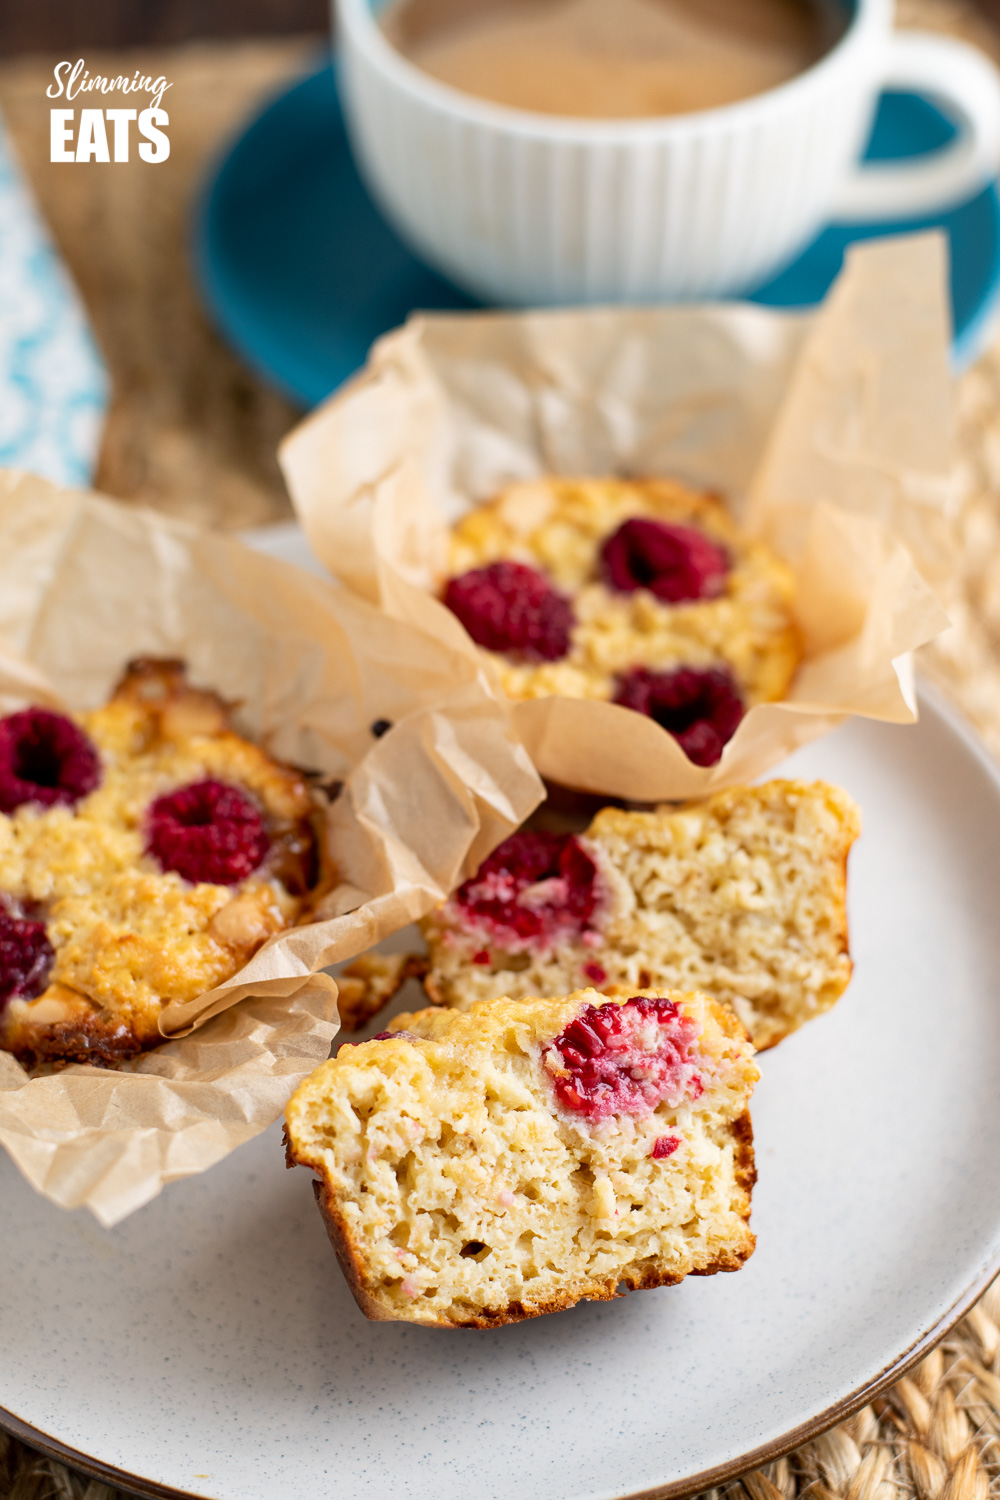 raspberry and white chocolate baked oatmeal sliced in half on plate with cup of coffee in background